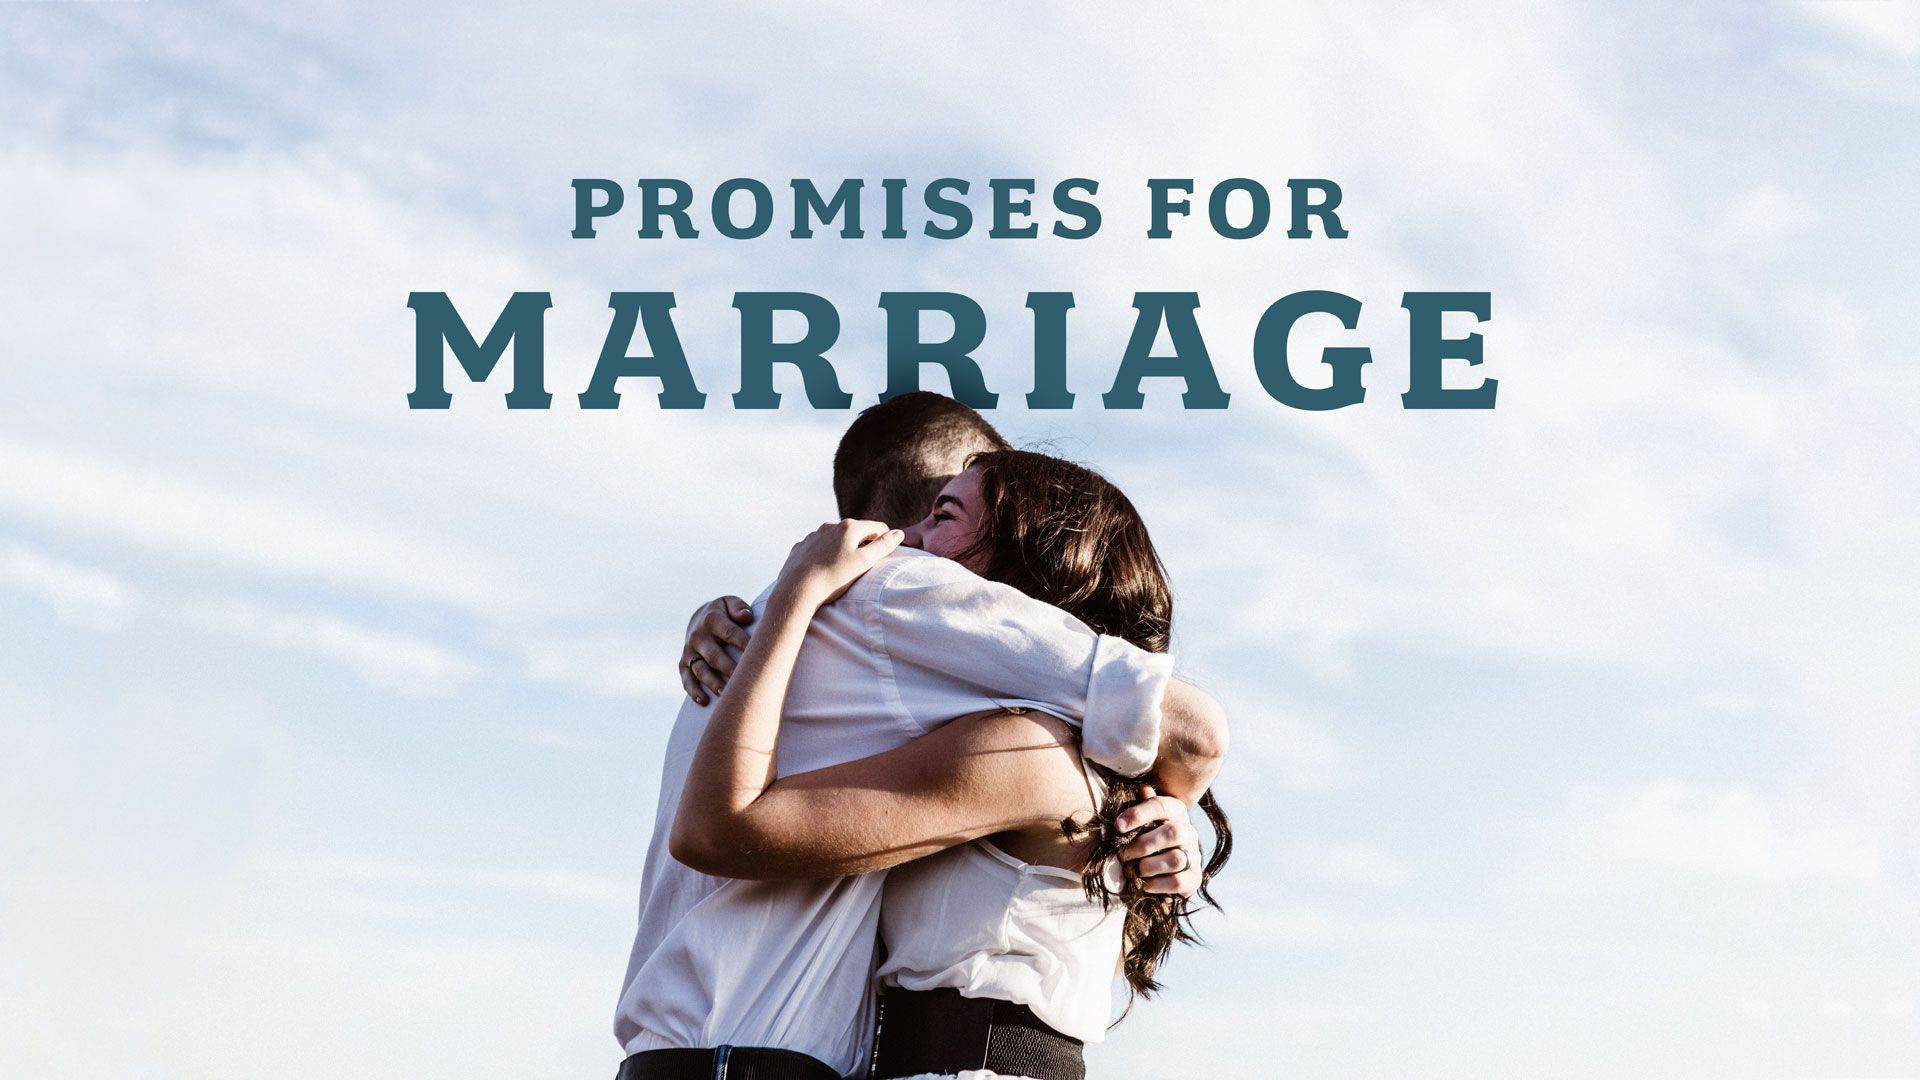 promises-for-marriage-title.jpg